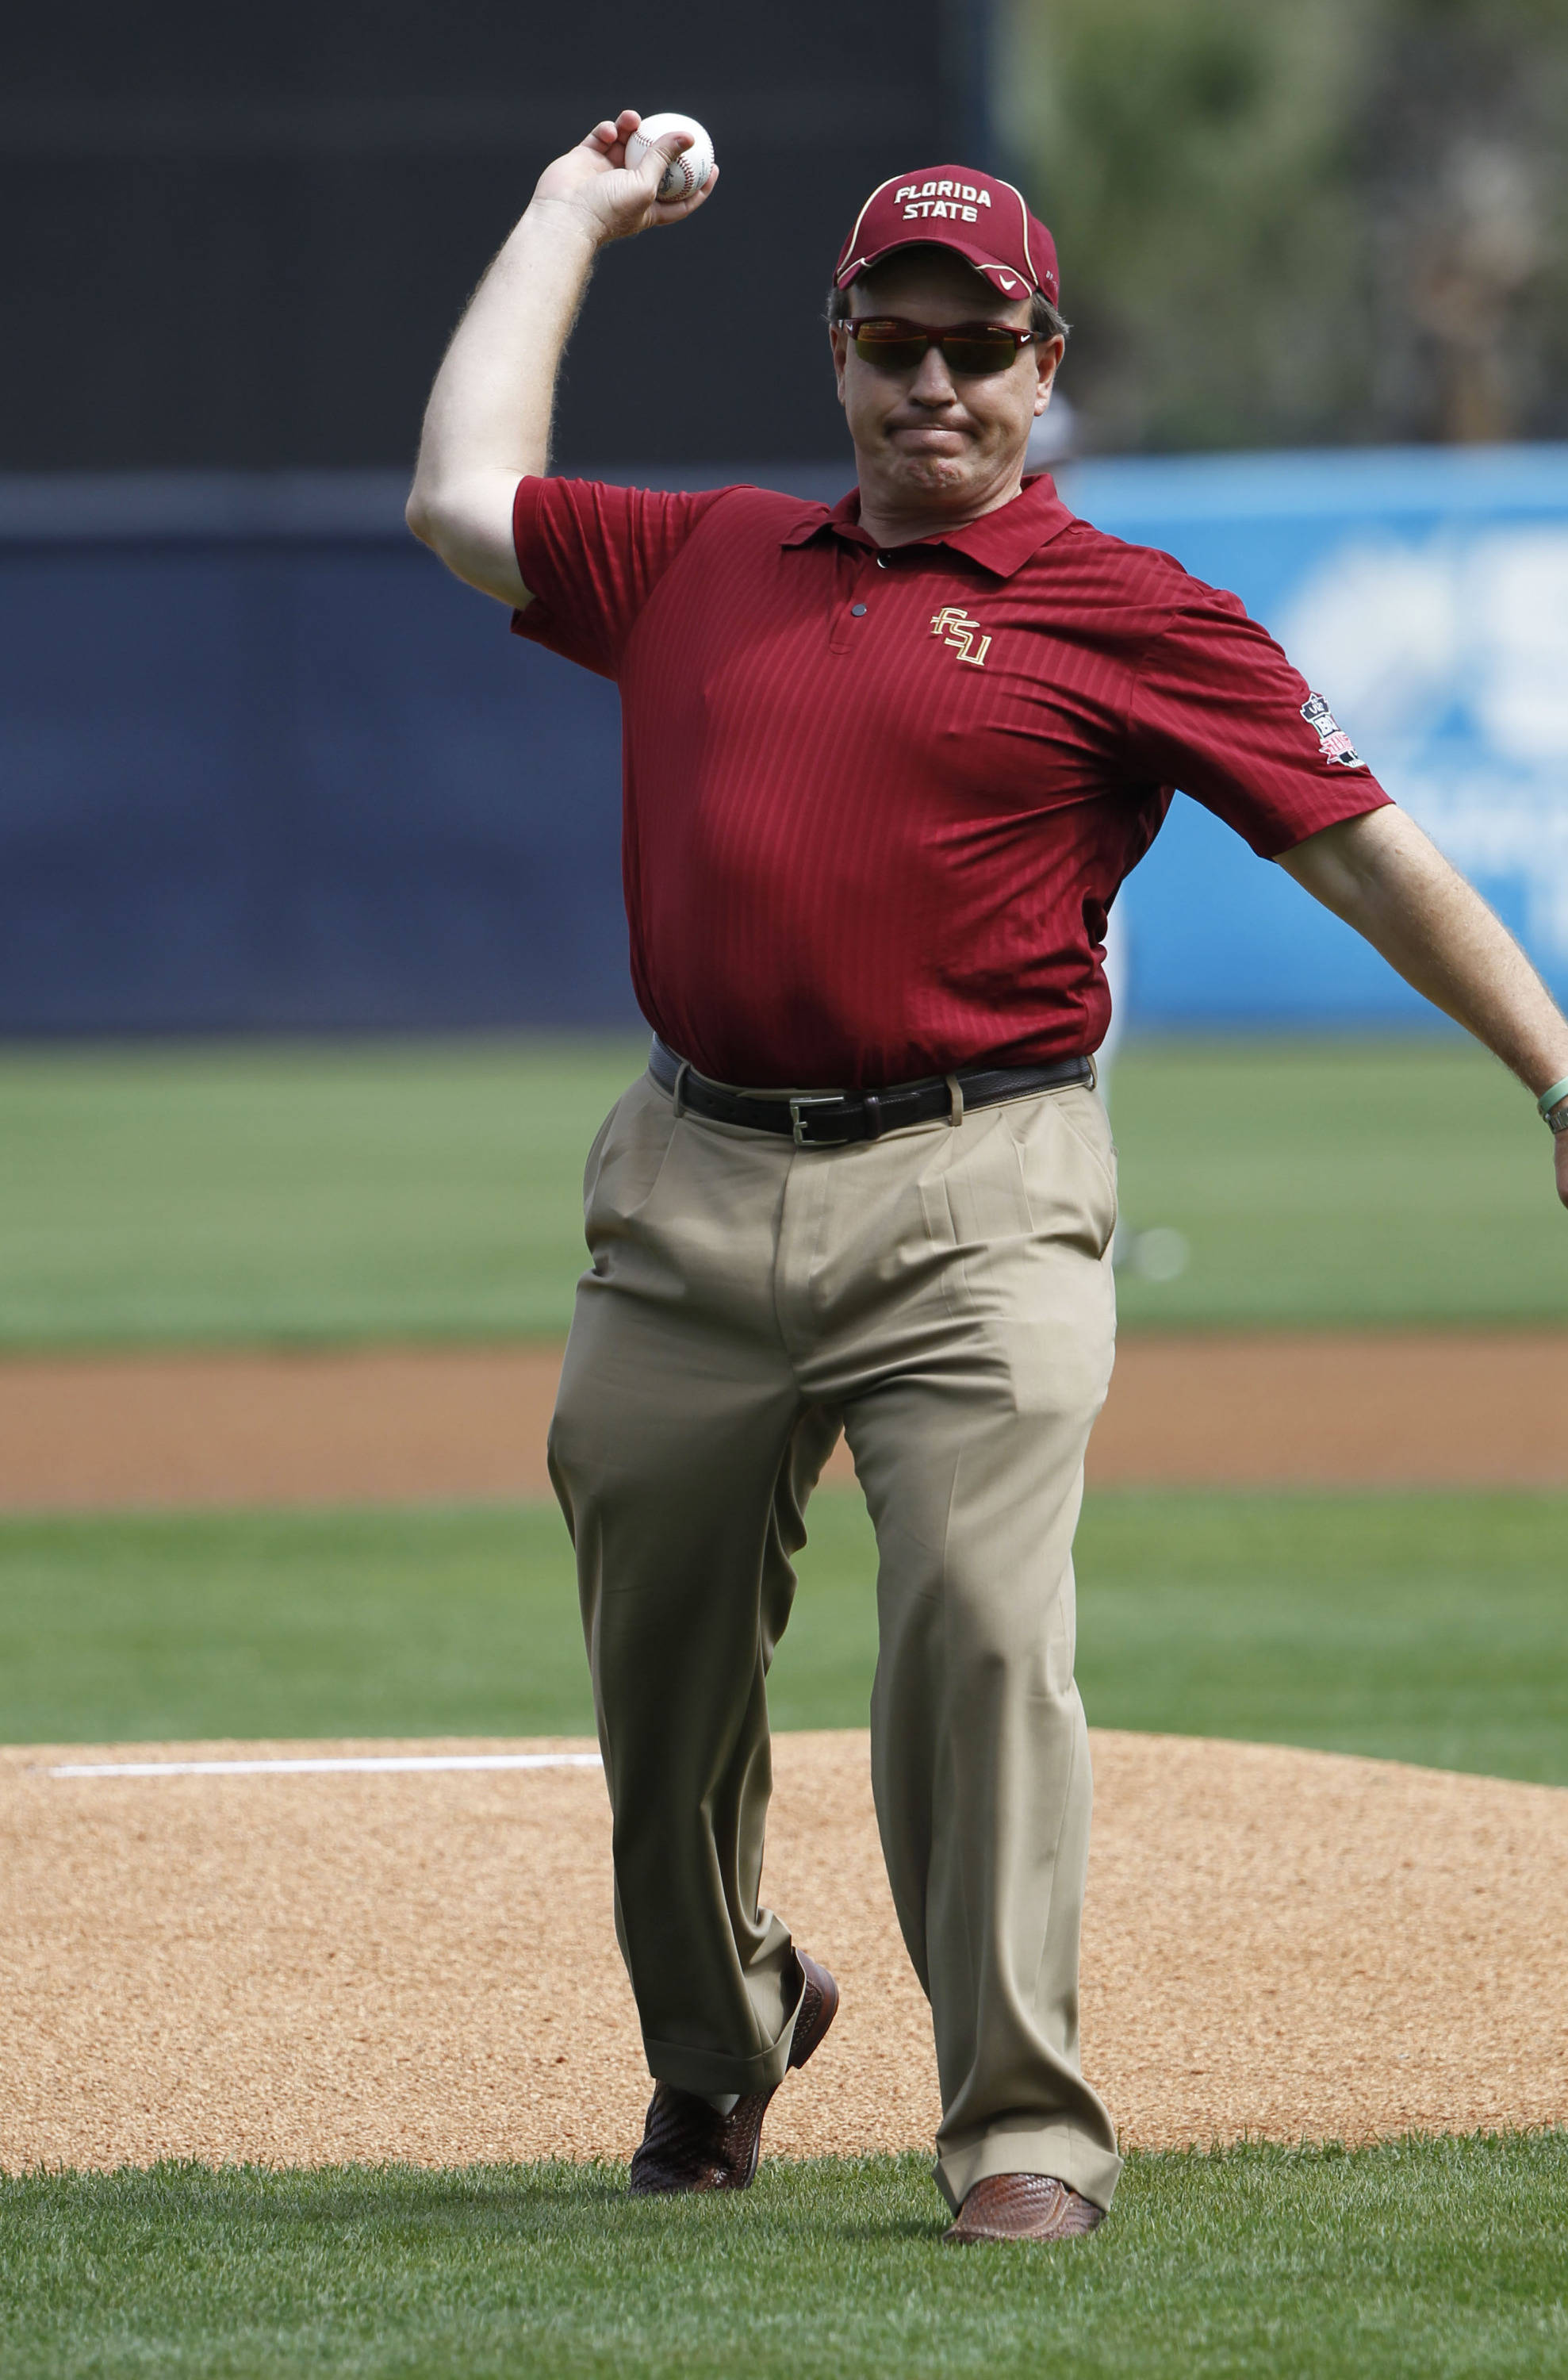 Feb 25, 2014; Tampa, FL, USA;  Florida State Seminoles football head coach Jimbo Fisher throws out the first pitch before the game against the New York Yankees at George M. Steinbrenner Field. Mandatory Credit: Kim Klement-USA TODAY Sports